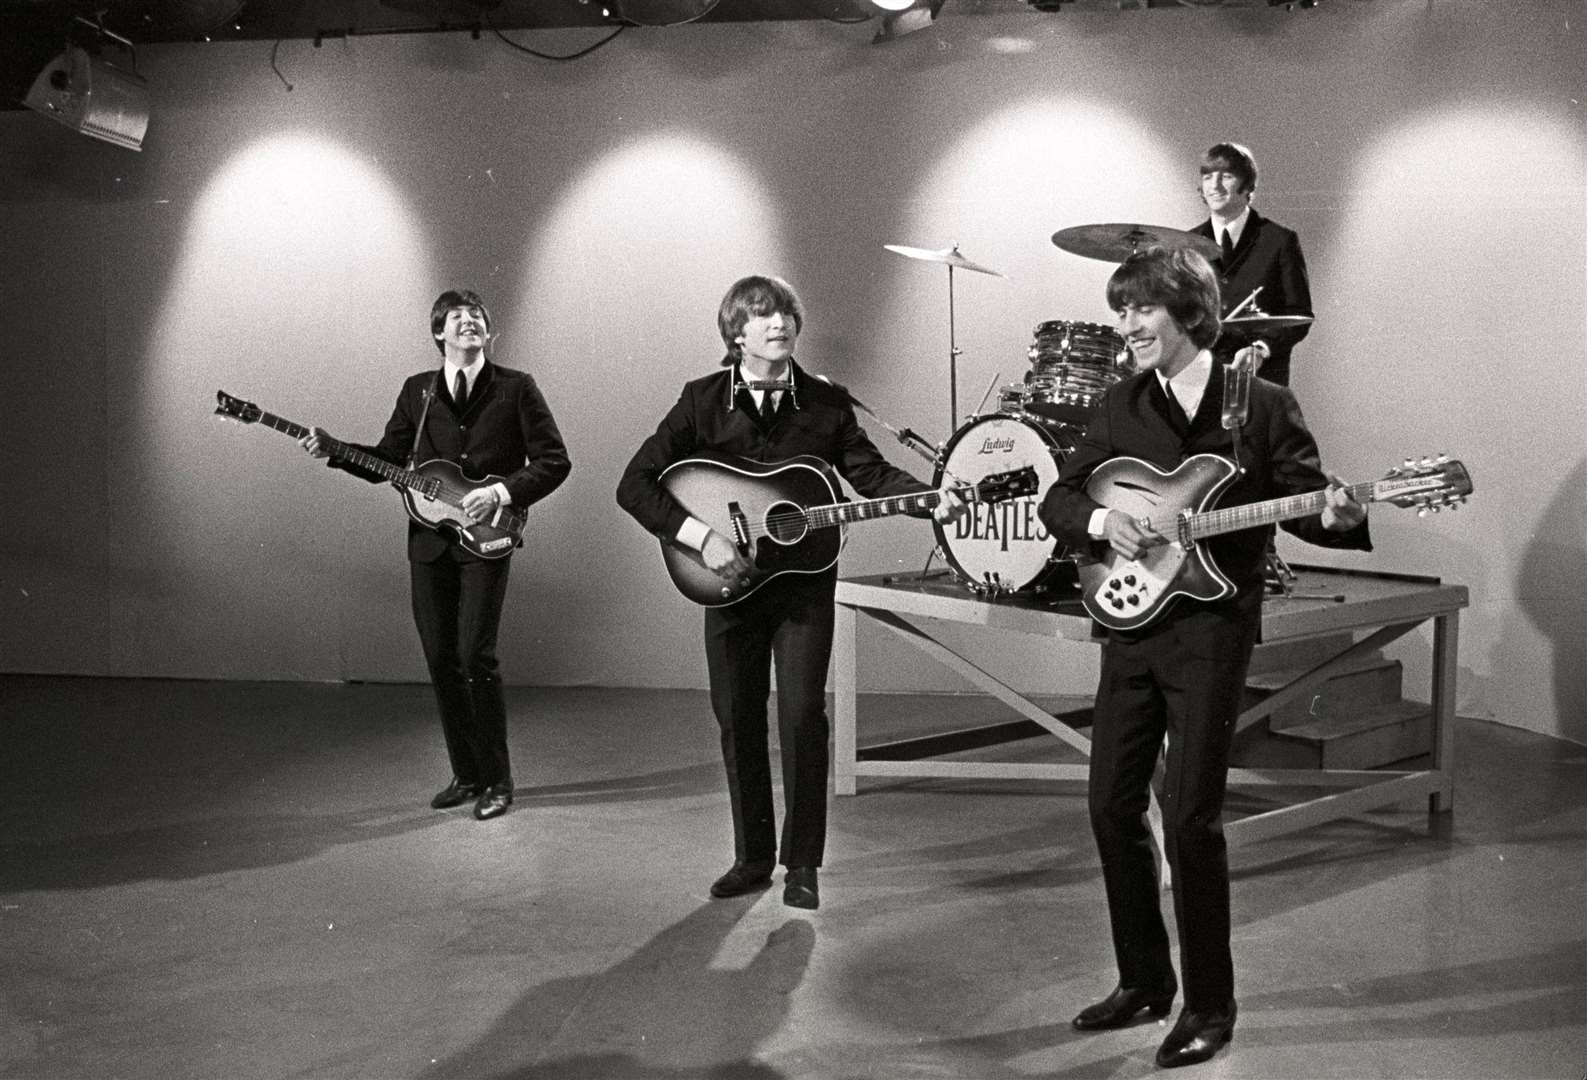 The Beatles performed a string of shows in Margate as well as an early outing in Chatham